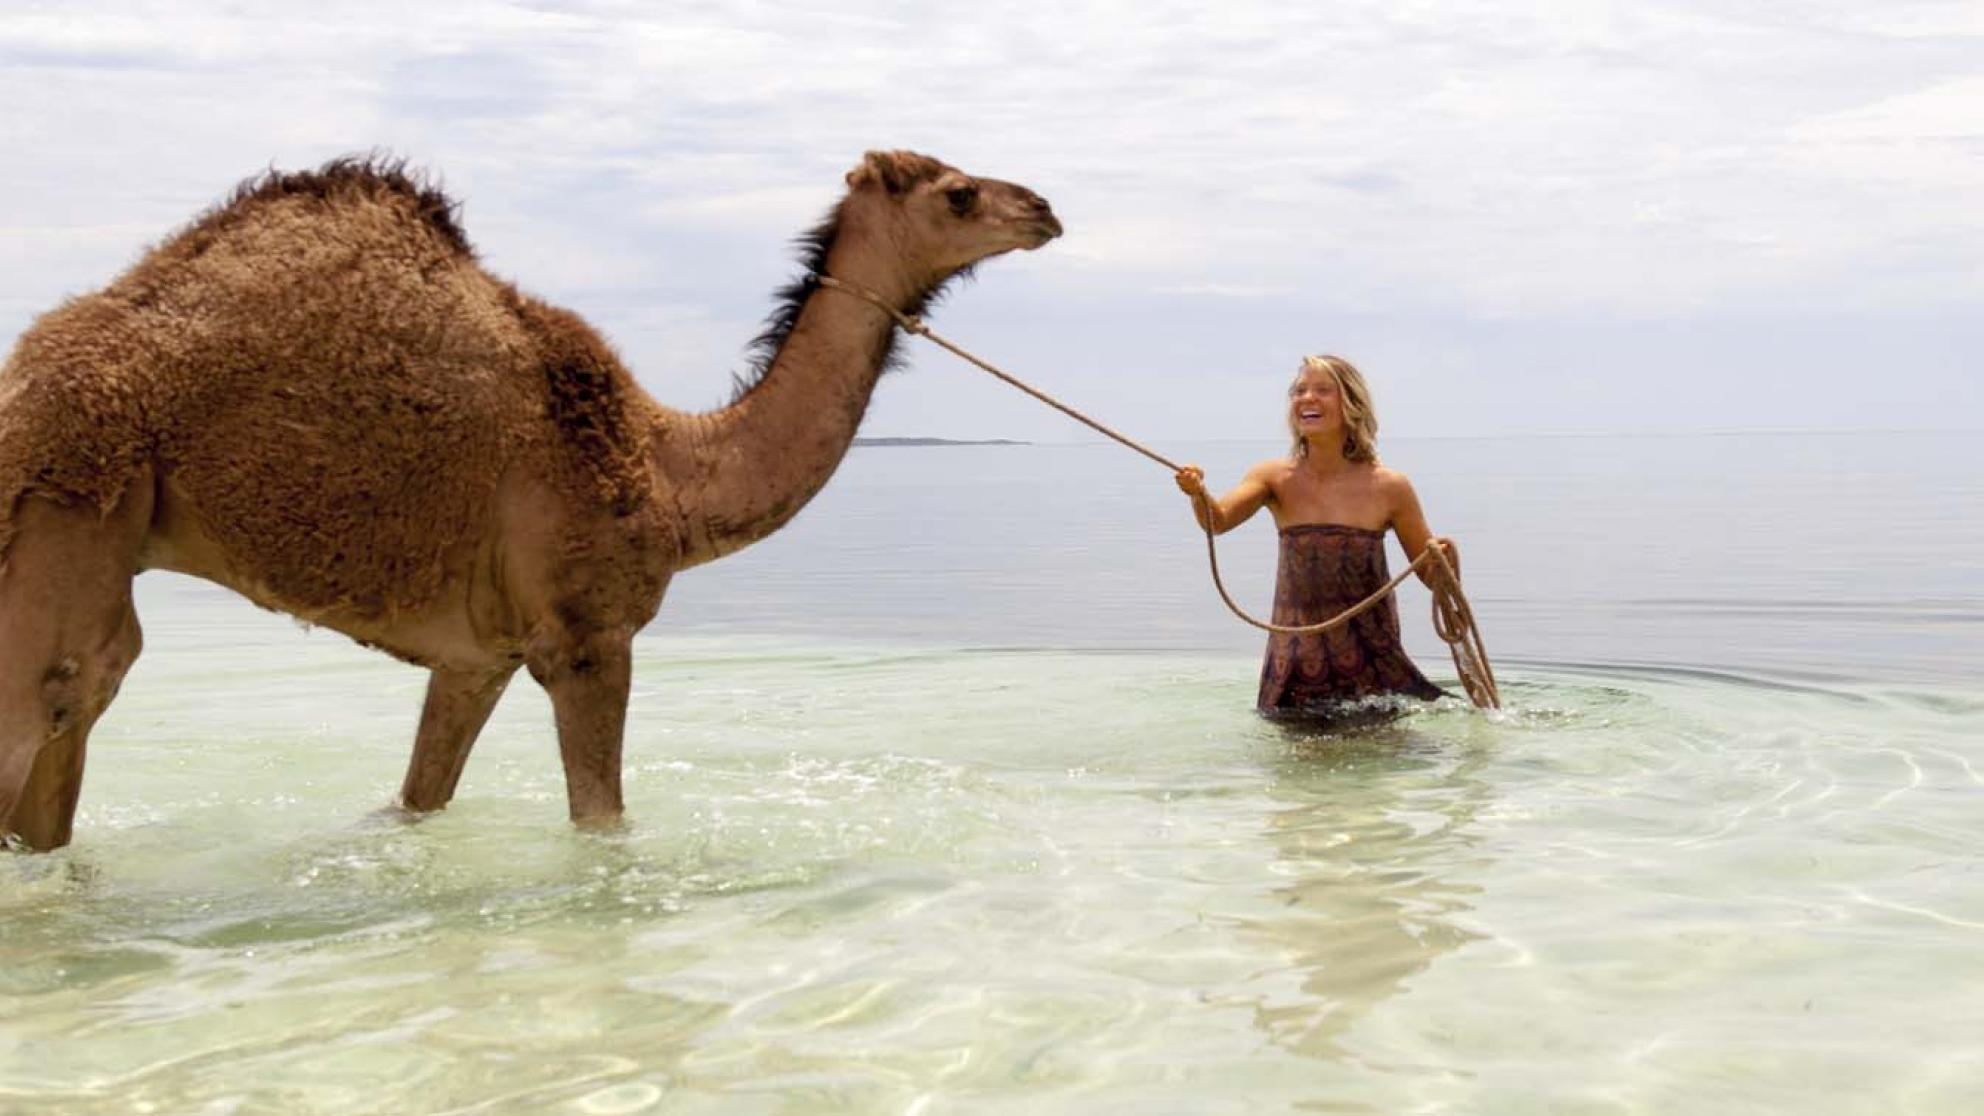 Mia Wasikowska leads a camel in the ocean in a scene from the film Tracks